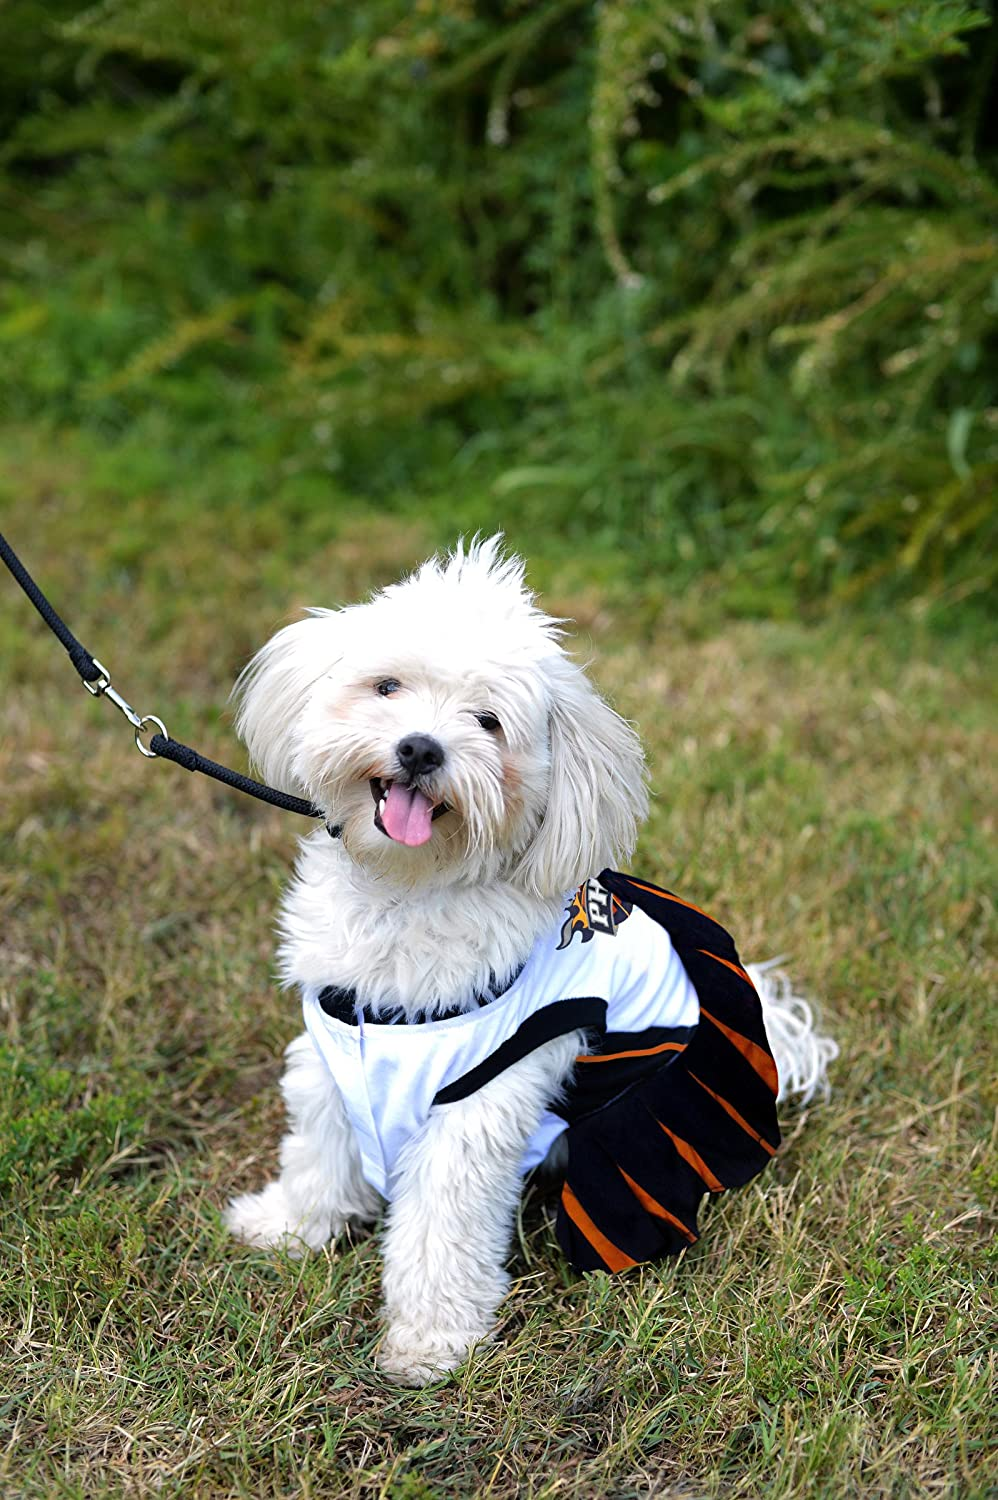 Pets First NBA PET Cheerleader Licensed Basketball Cheerleader for Dogs /& Cats Available in 16 Basketball Teams /& 3 Sizes Cute pet Outfit for All Sports Fans.